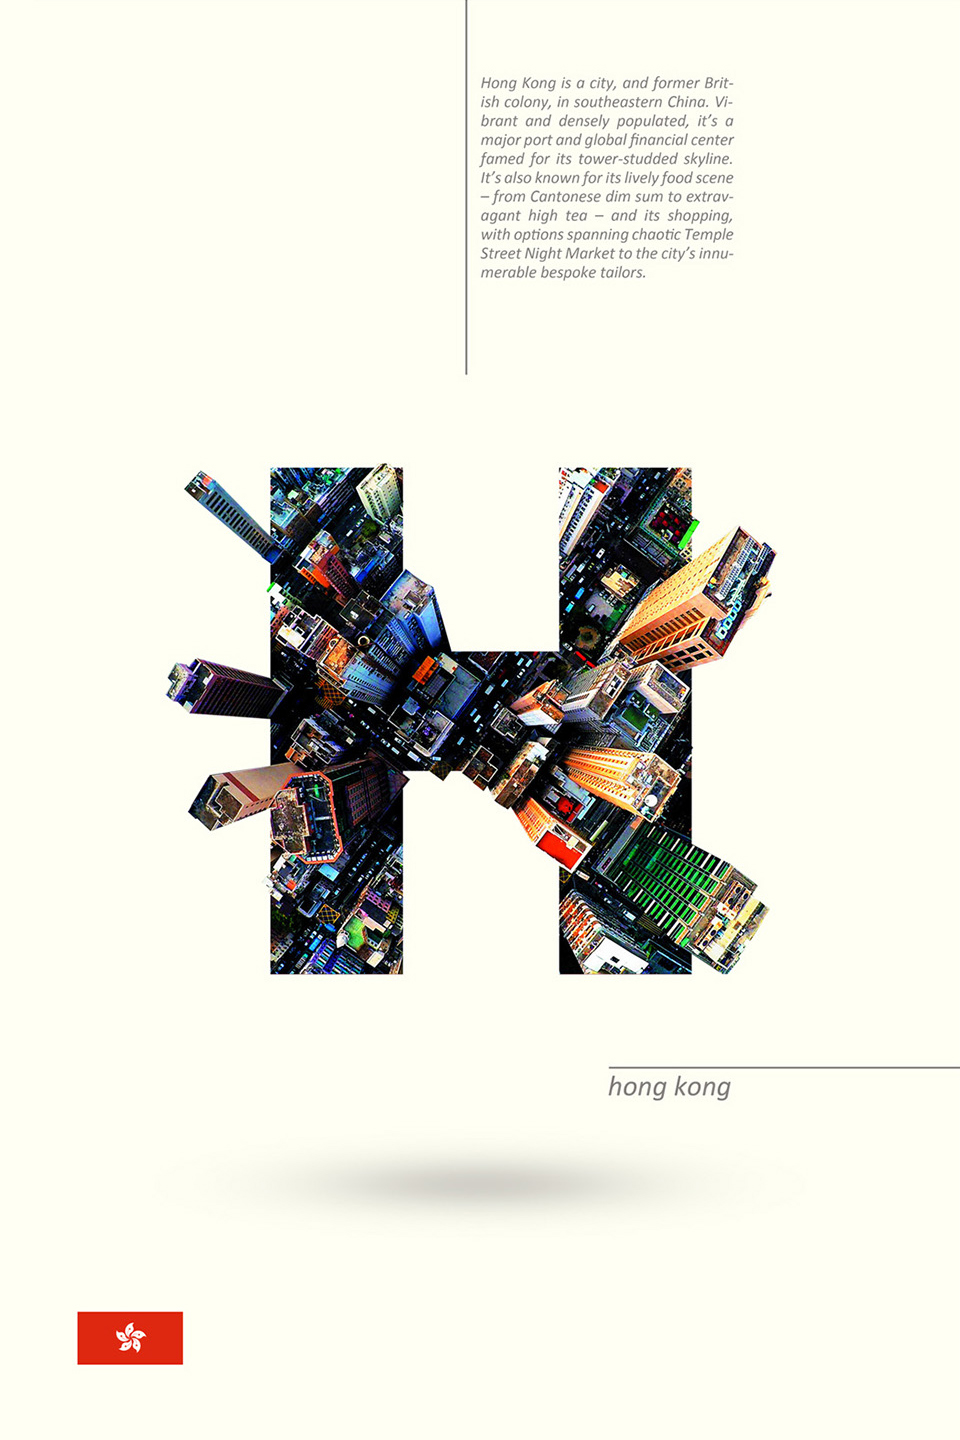 Beautiful Alphabet Series Of Countries And Their Iconic Landmarks - Hong Kong